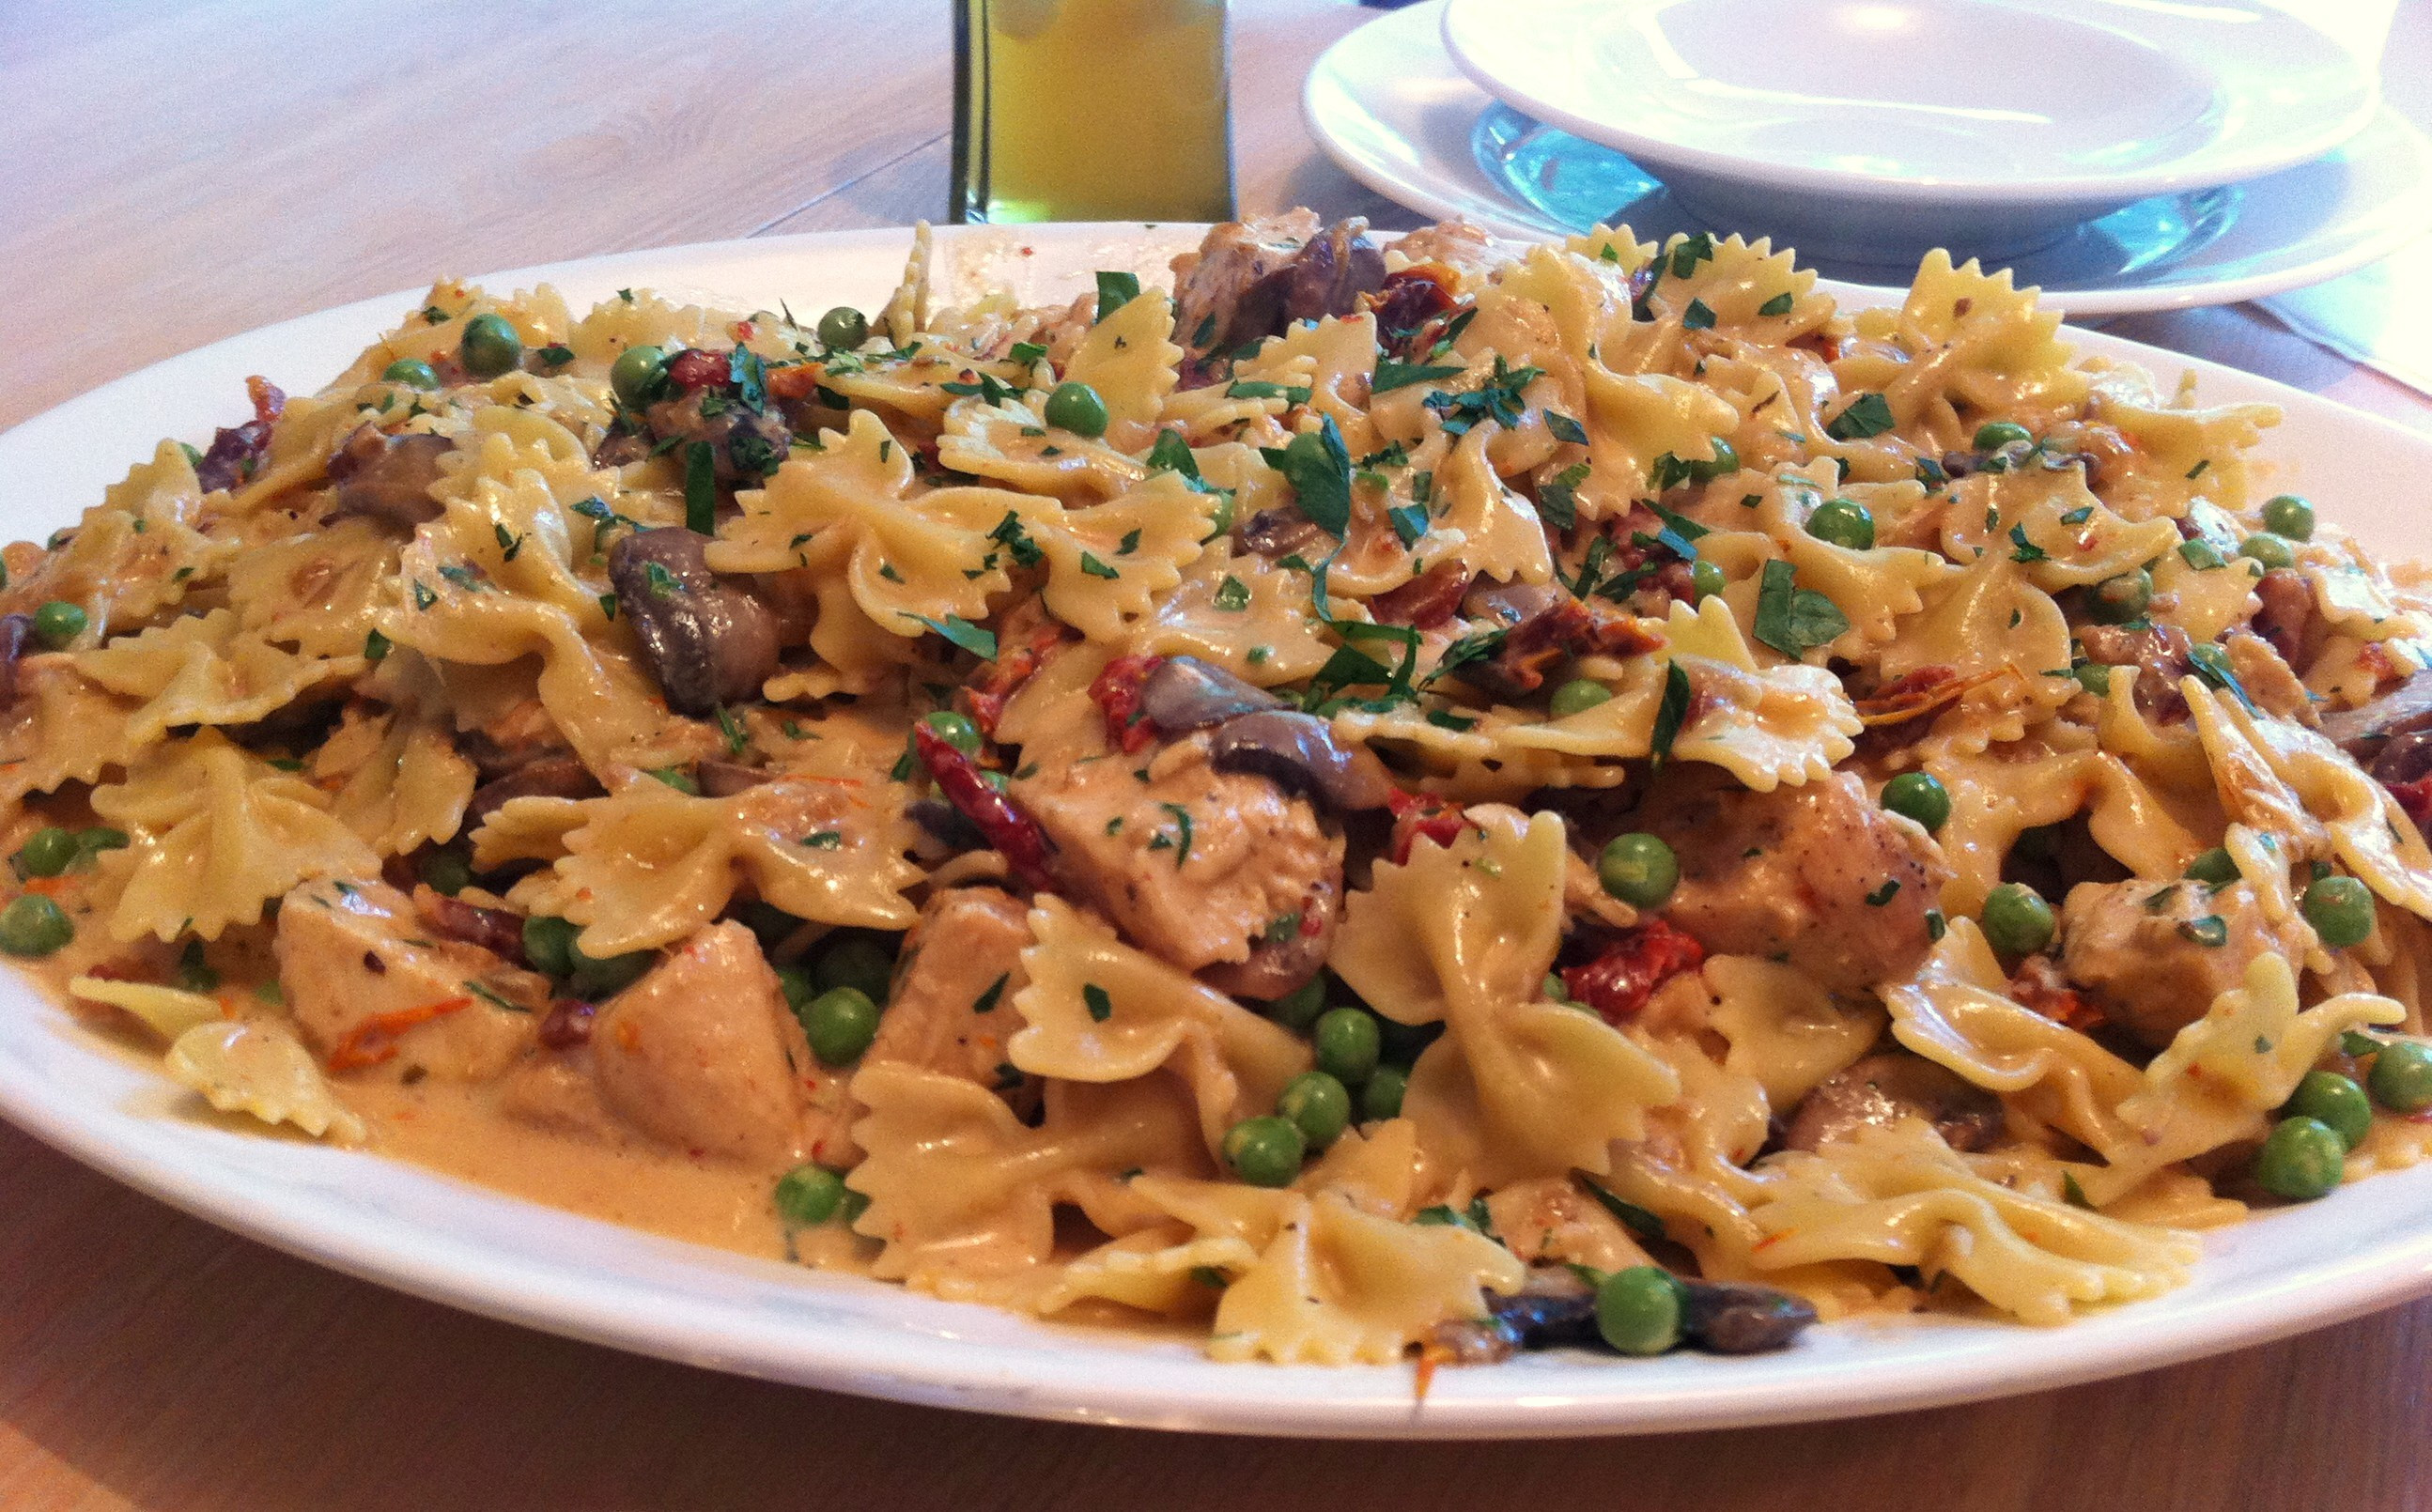 Farfalle With Chicken And Roasted Garlic  Chicken and Farfalle Pasta in a Roasted Garlic Cream Sauce